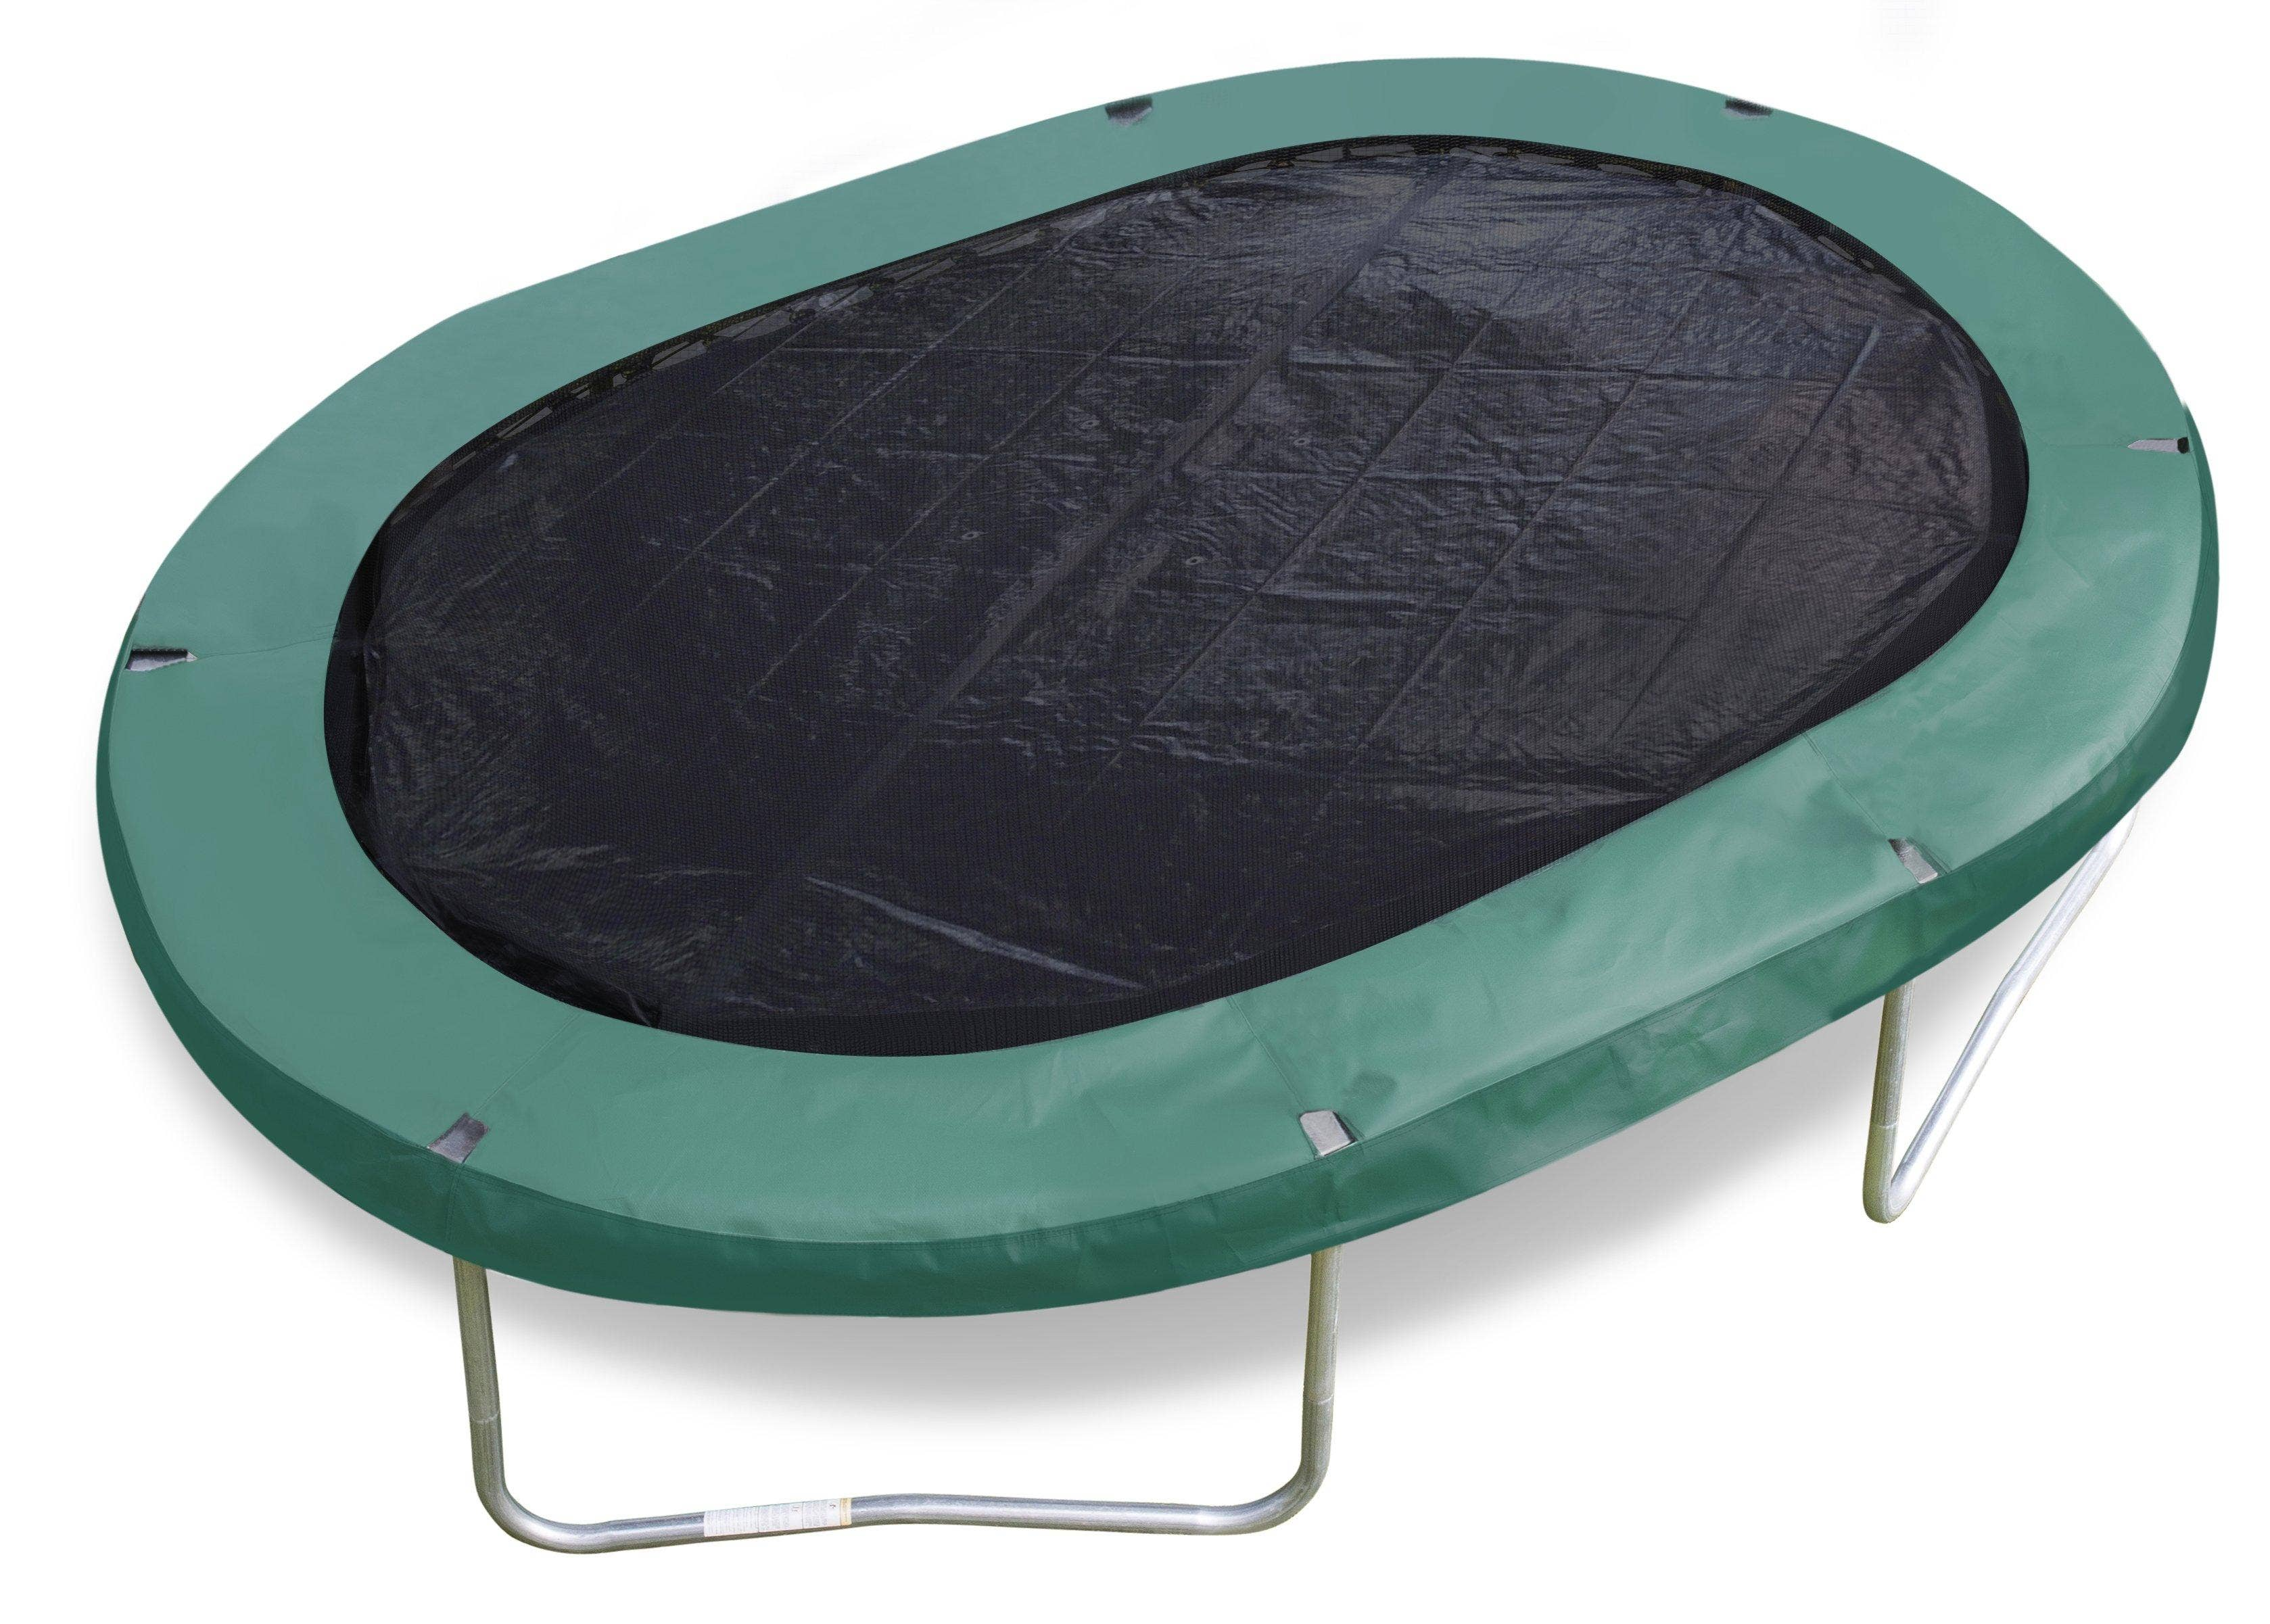 Jumpking Oval Bed Cover